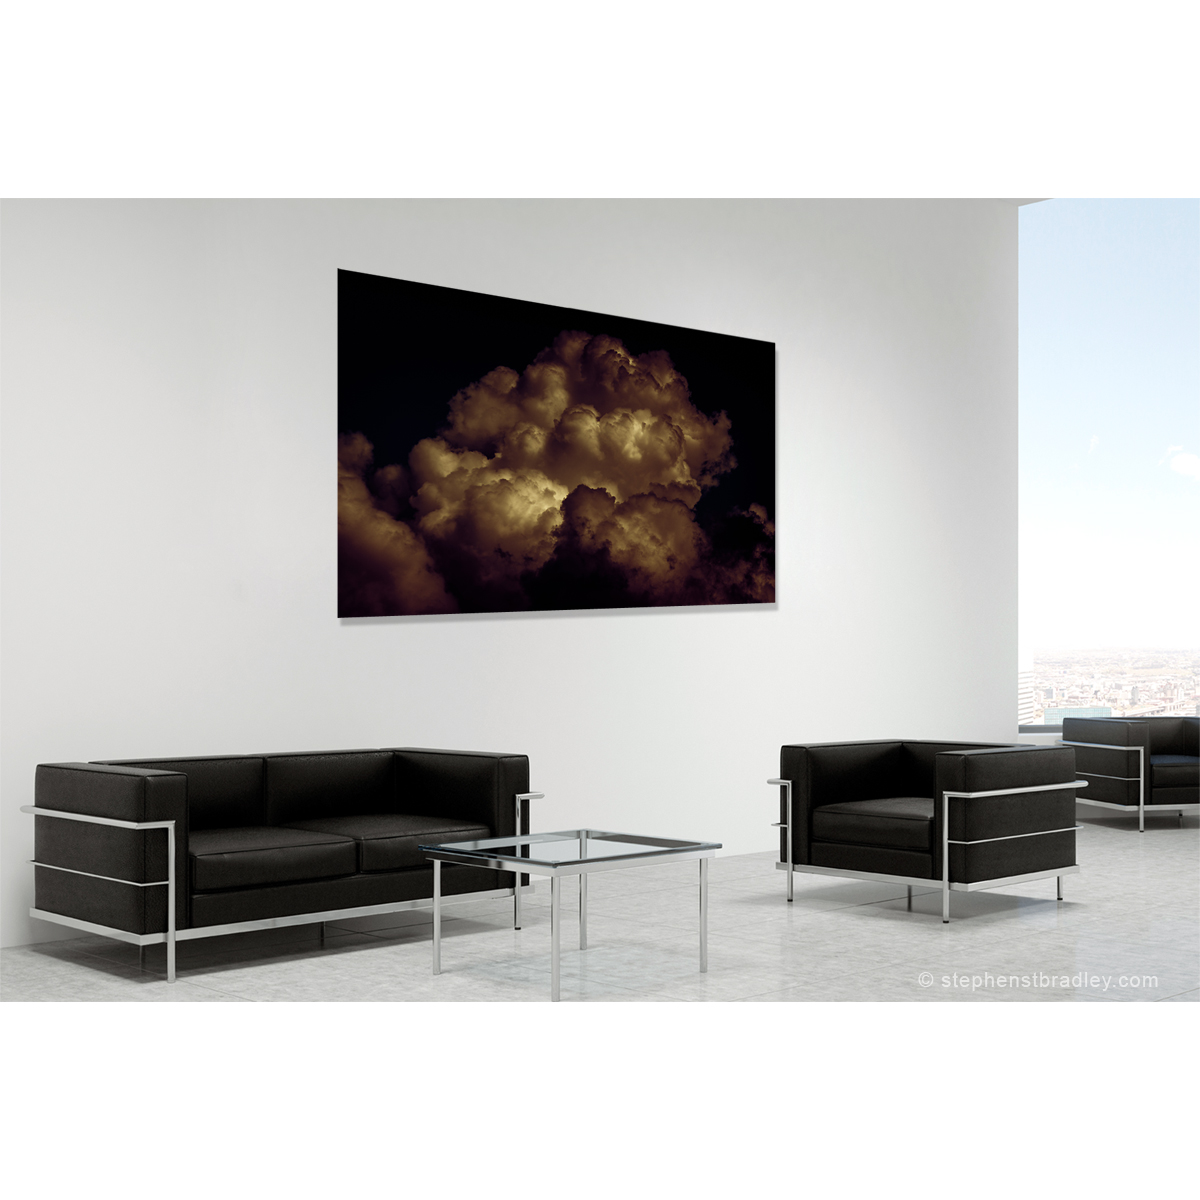 Fine art landscape photograph in a room setting - photo reference 6295.